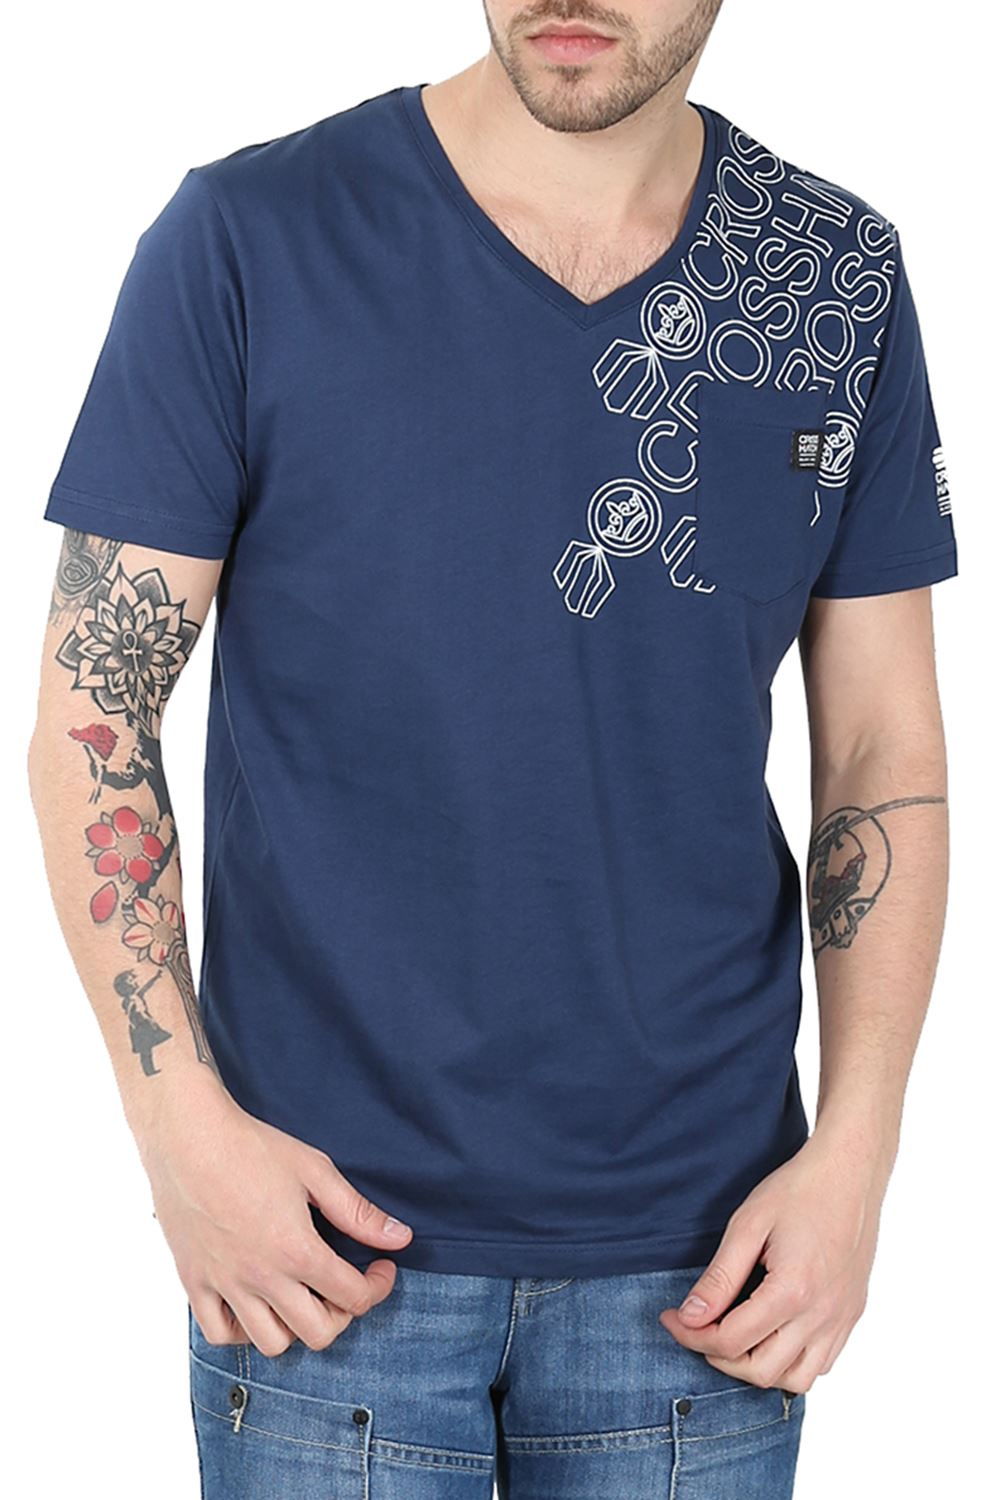 """May 02, · """"A few summers ago I bought a lightweight, slub cotton, V-neck T-shirt from perscrib-serp.cf was kind of the perfect shirt. A fairly shallow V-neck, reasonably slim cut, and very light. Over the course."""